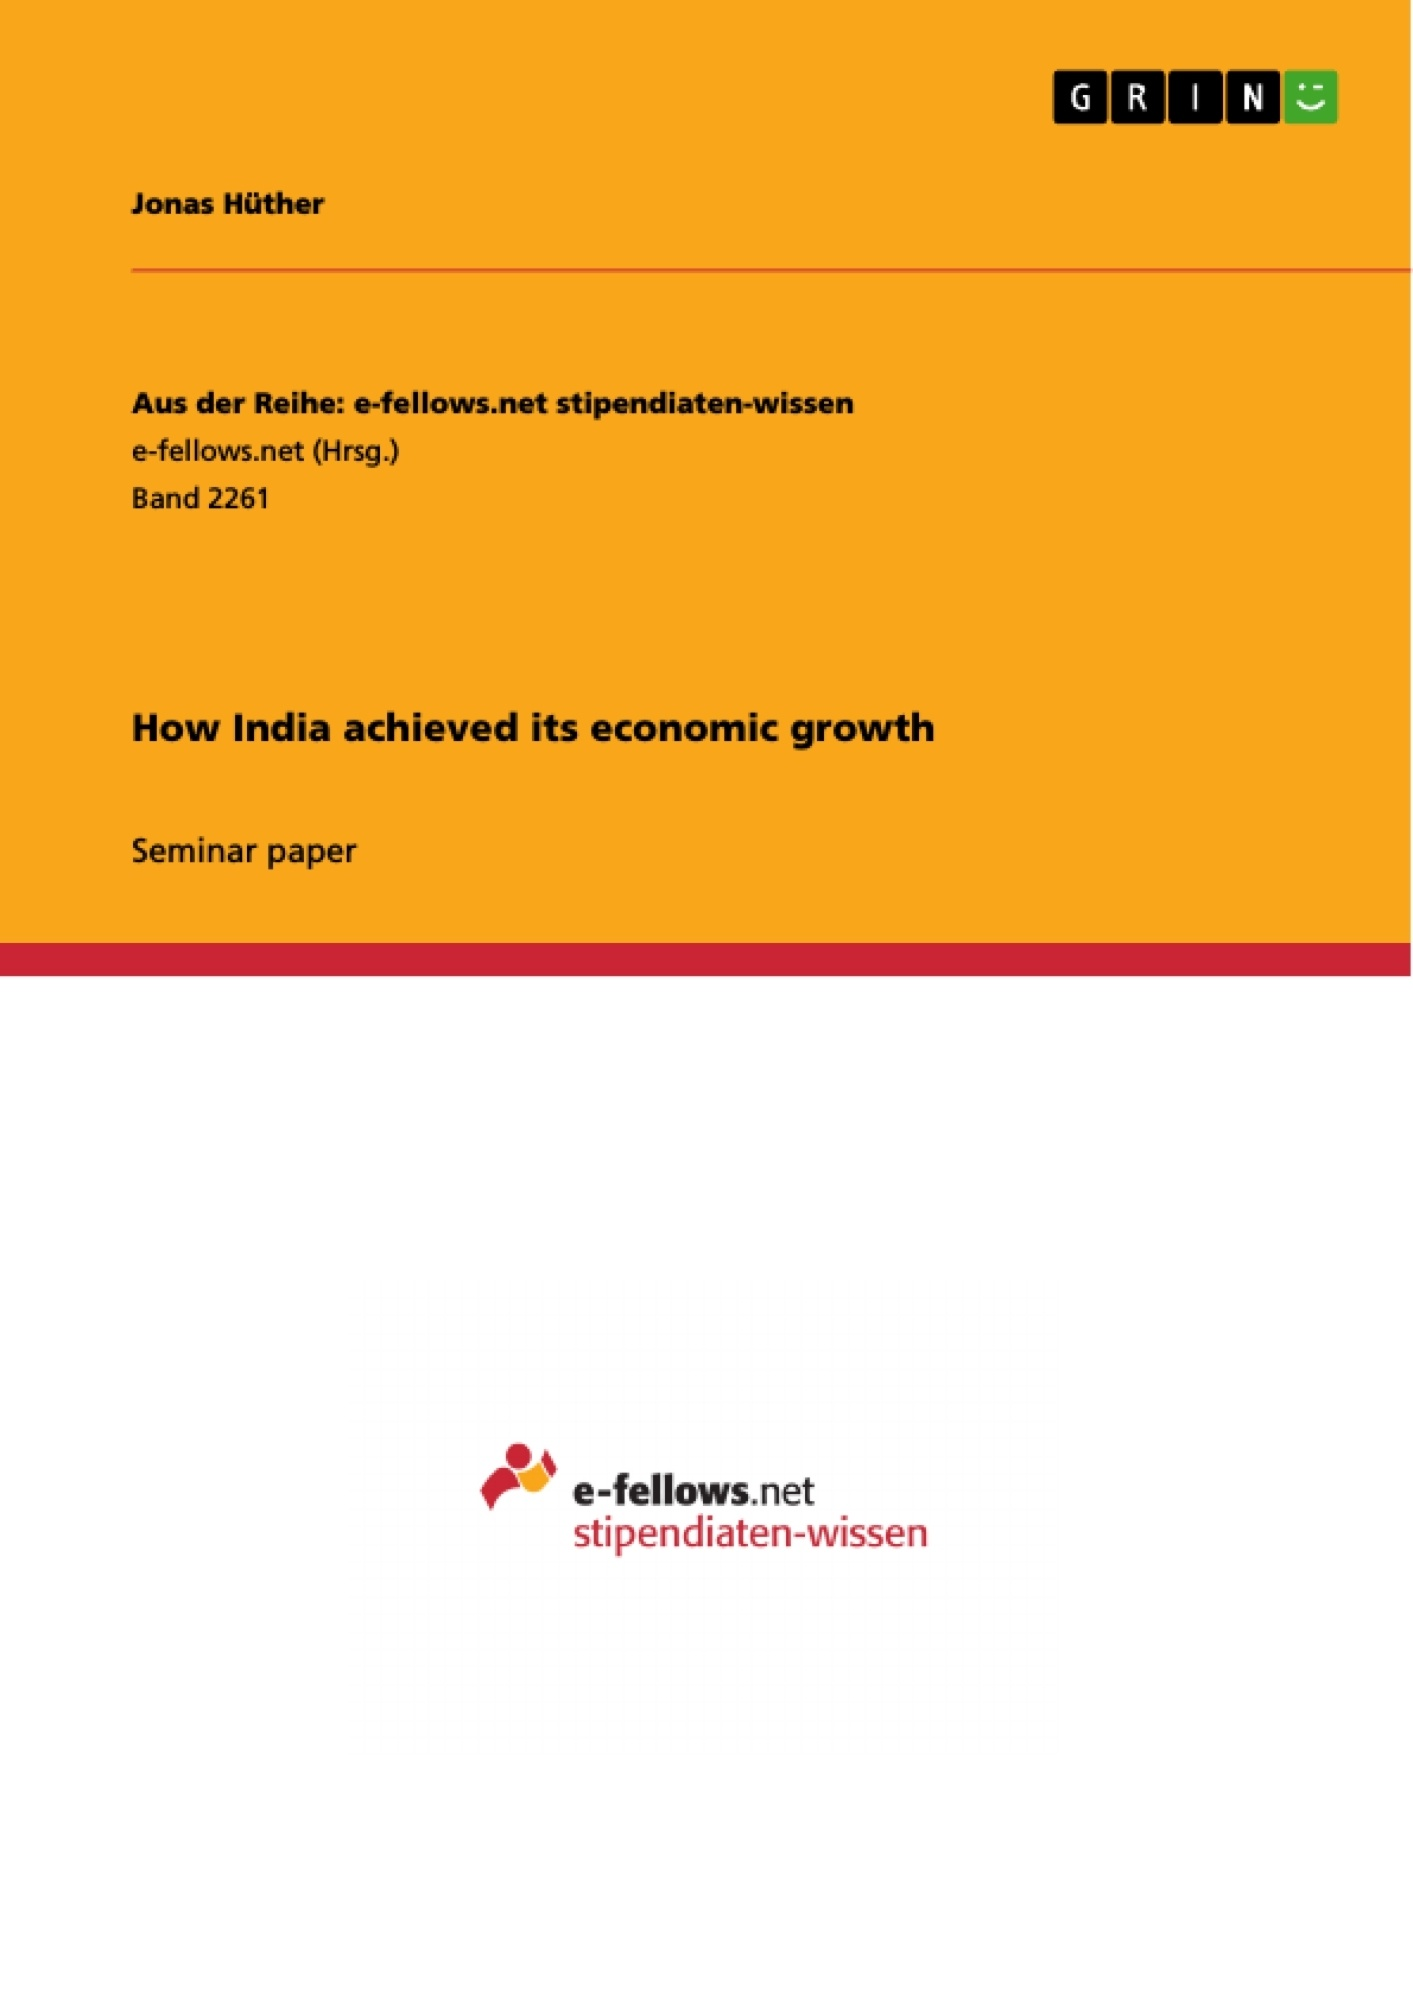 Title: How India achieved its economic growth